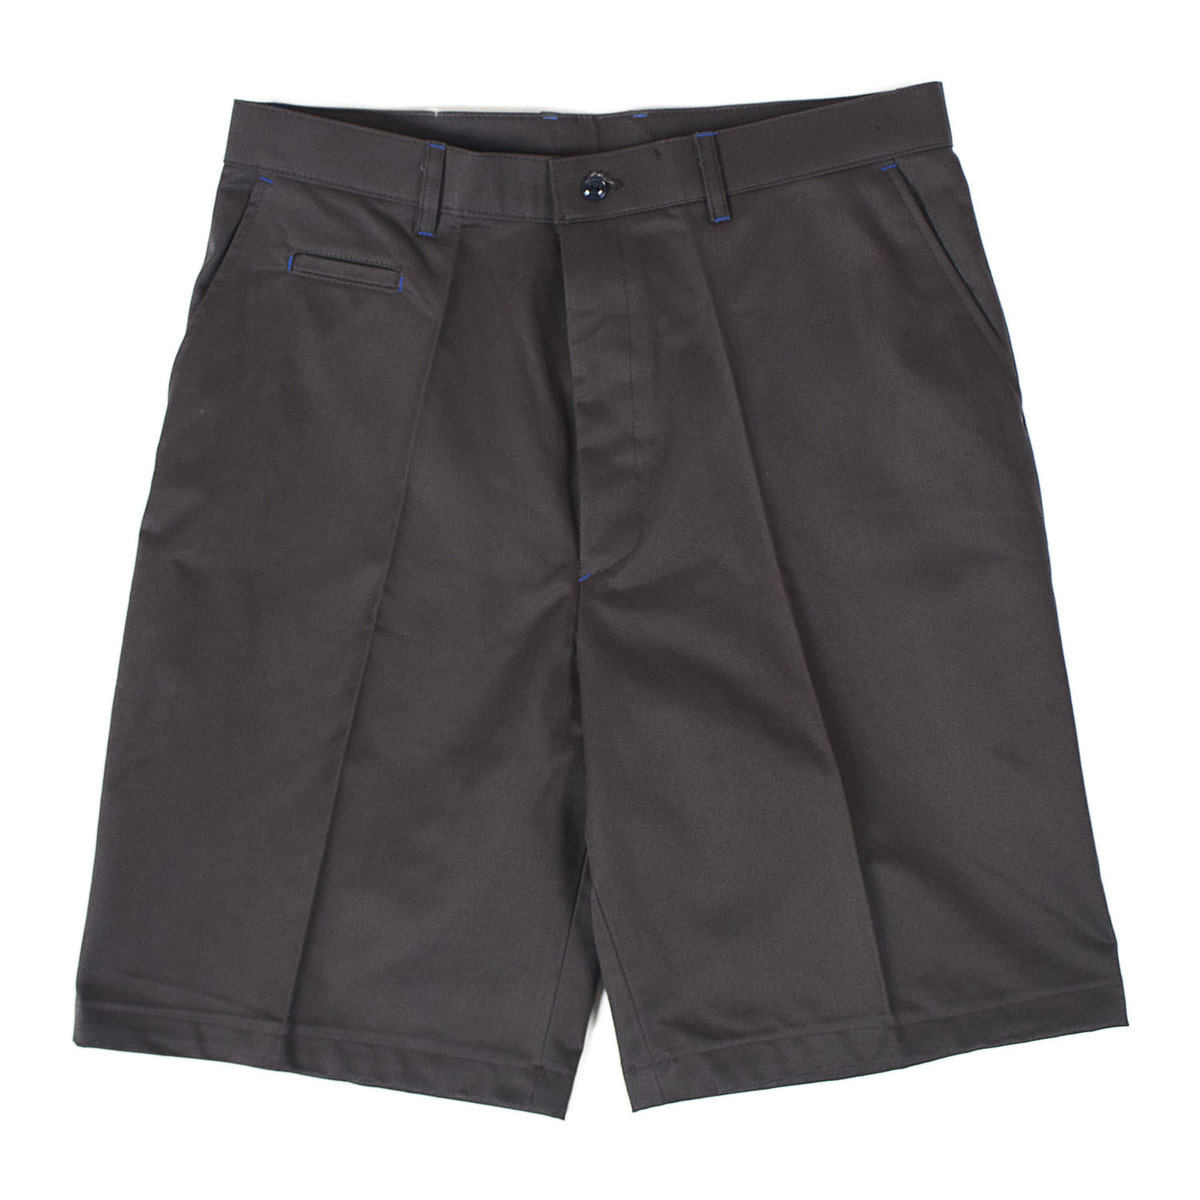 Basic Chino Shorts (Charcoal)